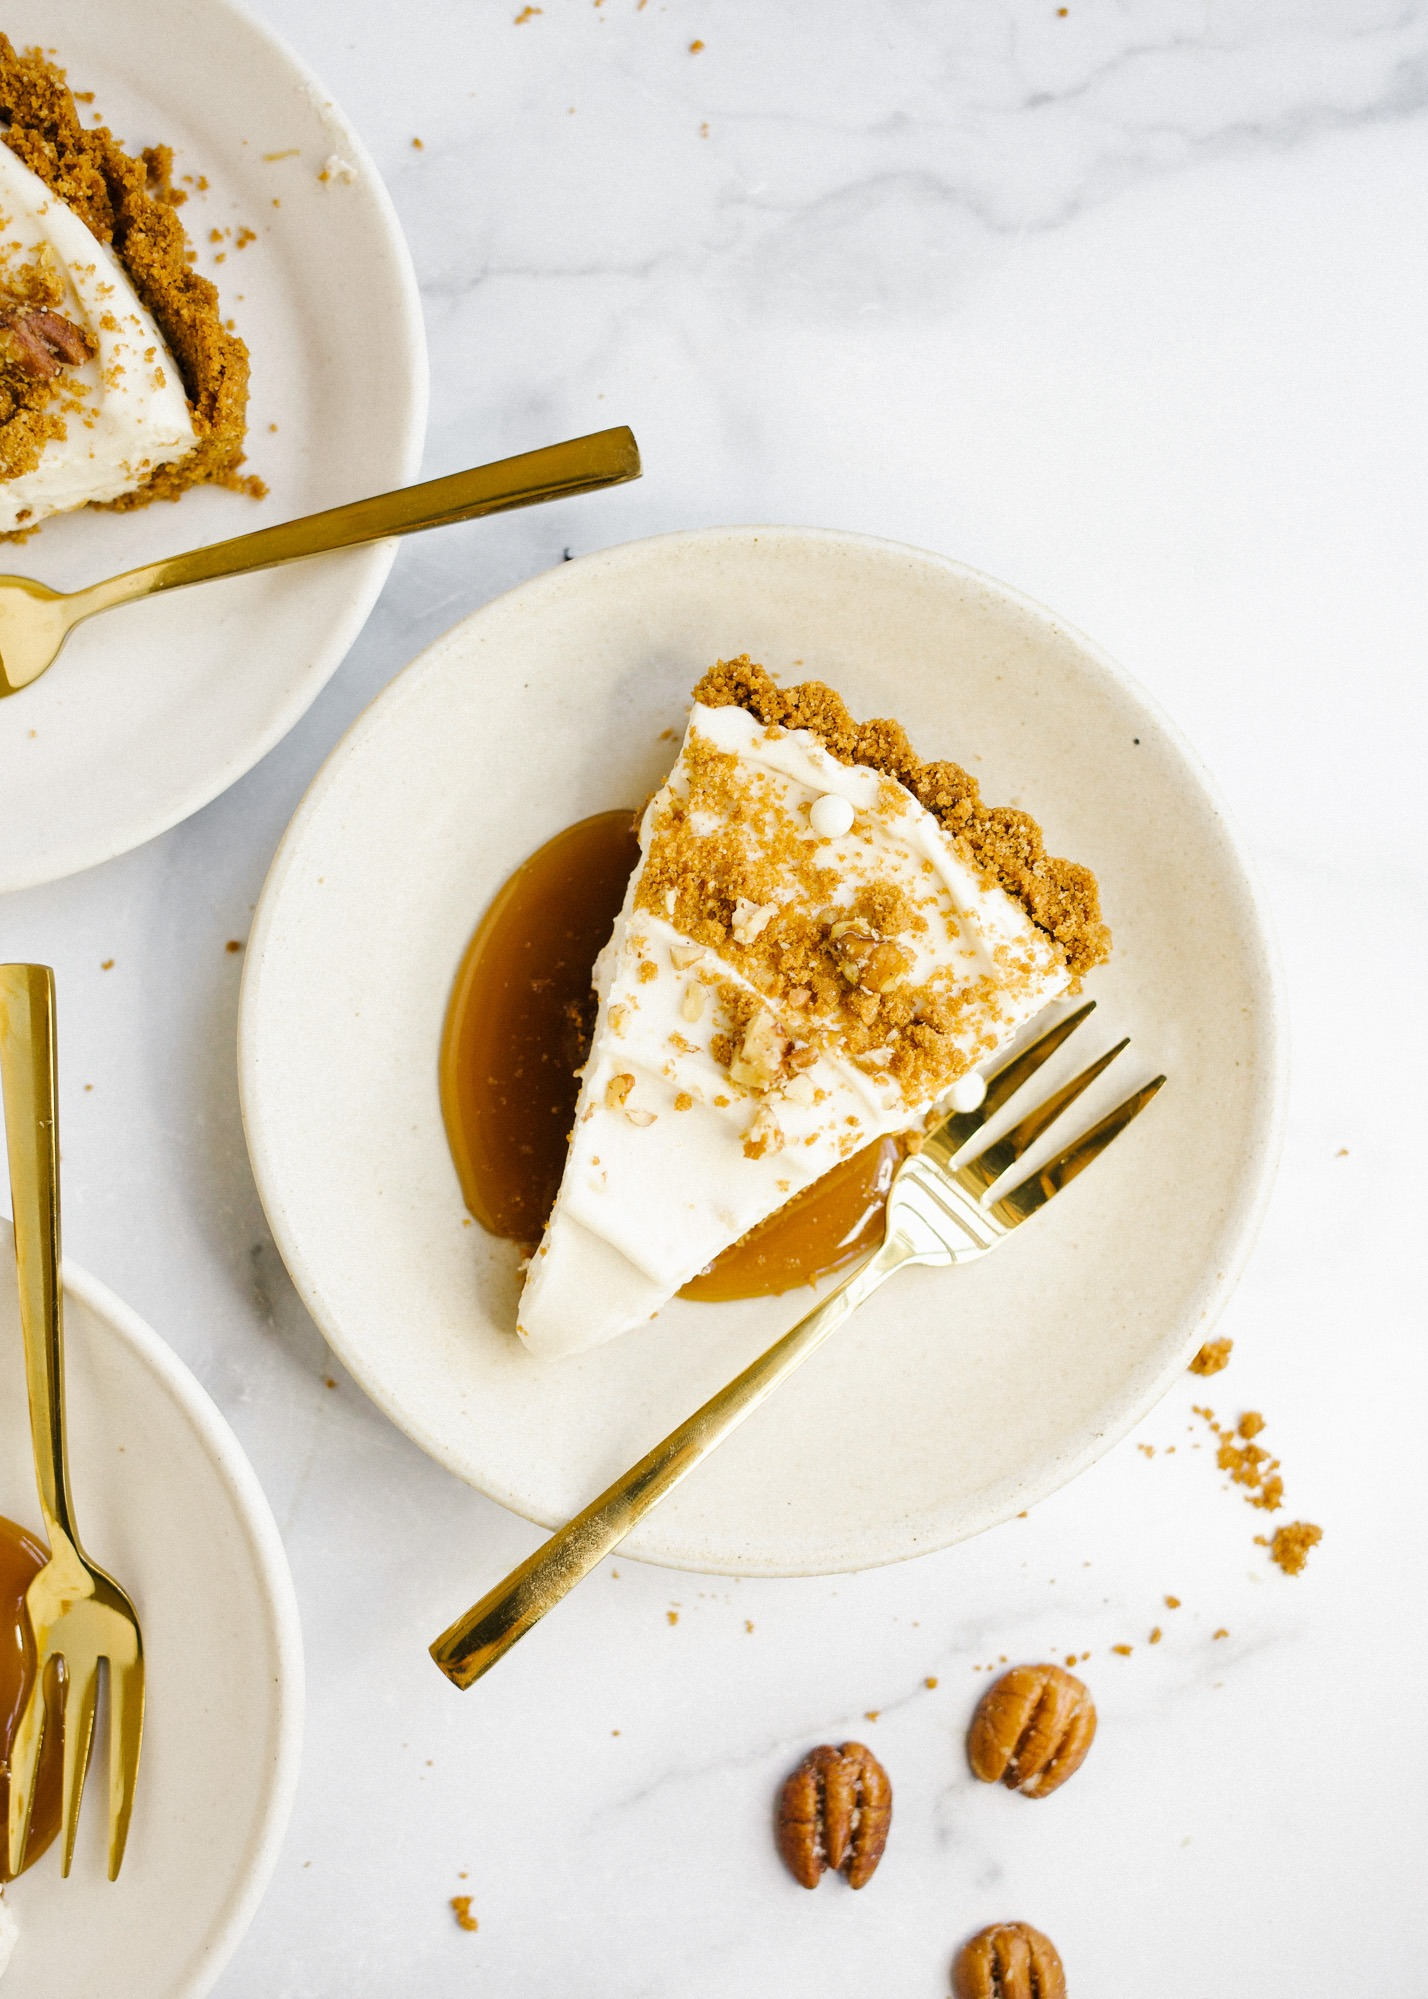 Maple Cream Tart by Wood and Spoon. This is a simple cream tart made with a biscoff cookie and pecan crust, a maple cream pie filling, and a homemade maple caramel. This sweet and salty holiday dessert can be made ahead and feeds a crowd. Learn how to make this beautiful fall dessert on thewoodandspoon.com